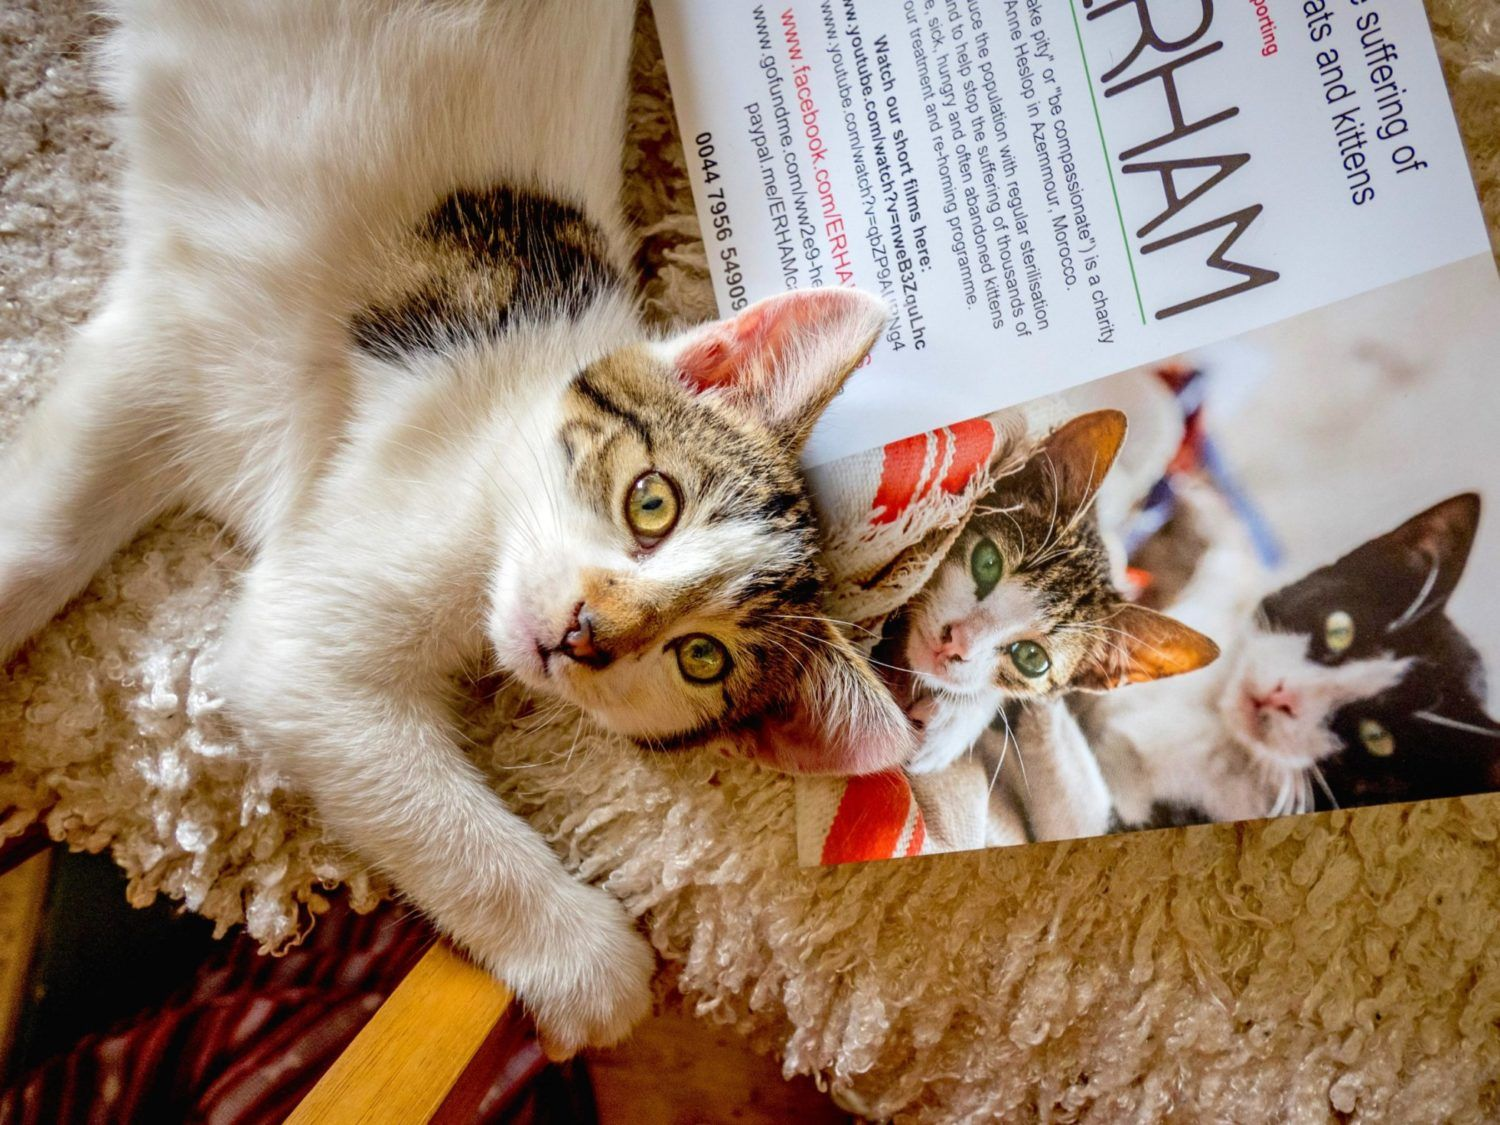 London Catfest The Cat Festival Is Back In Beckenham Place In 2020 Cats Camping With Cats Pet News